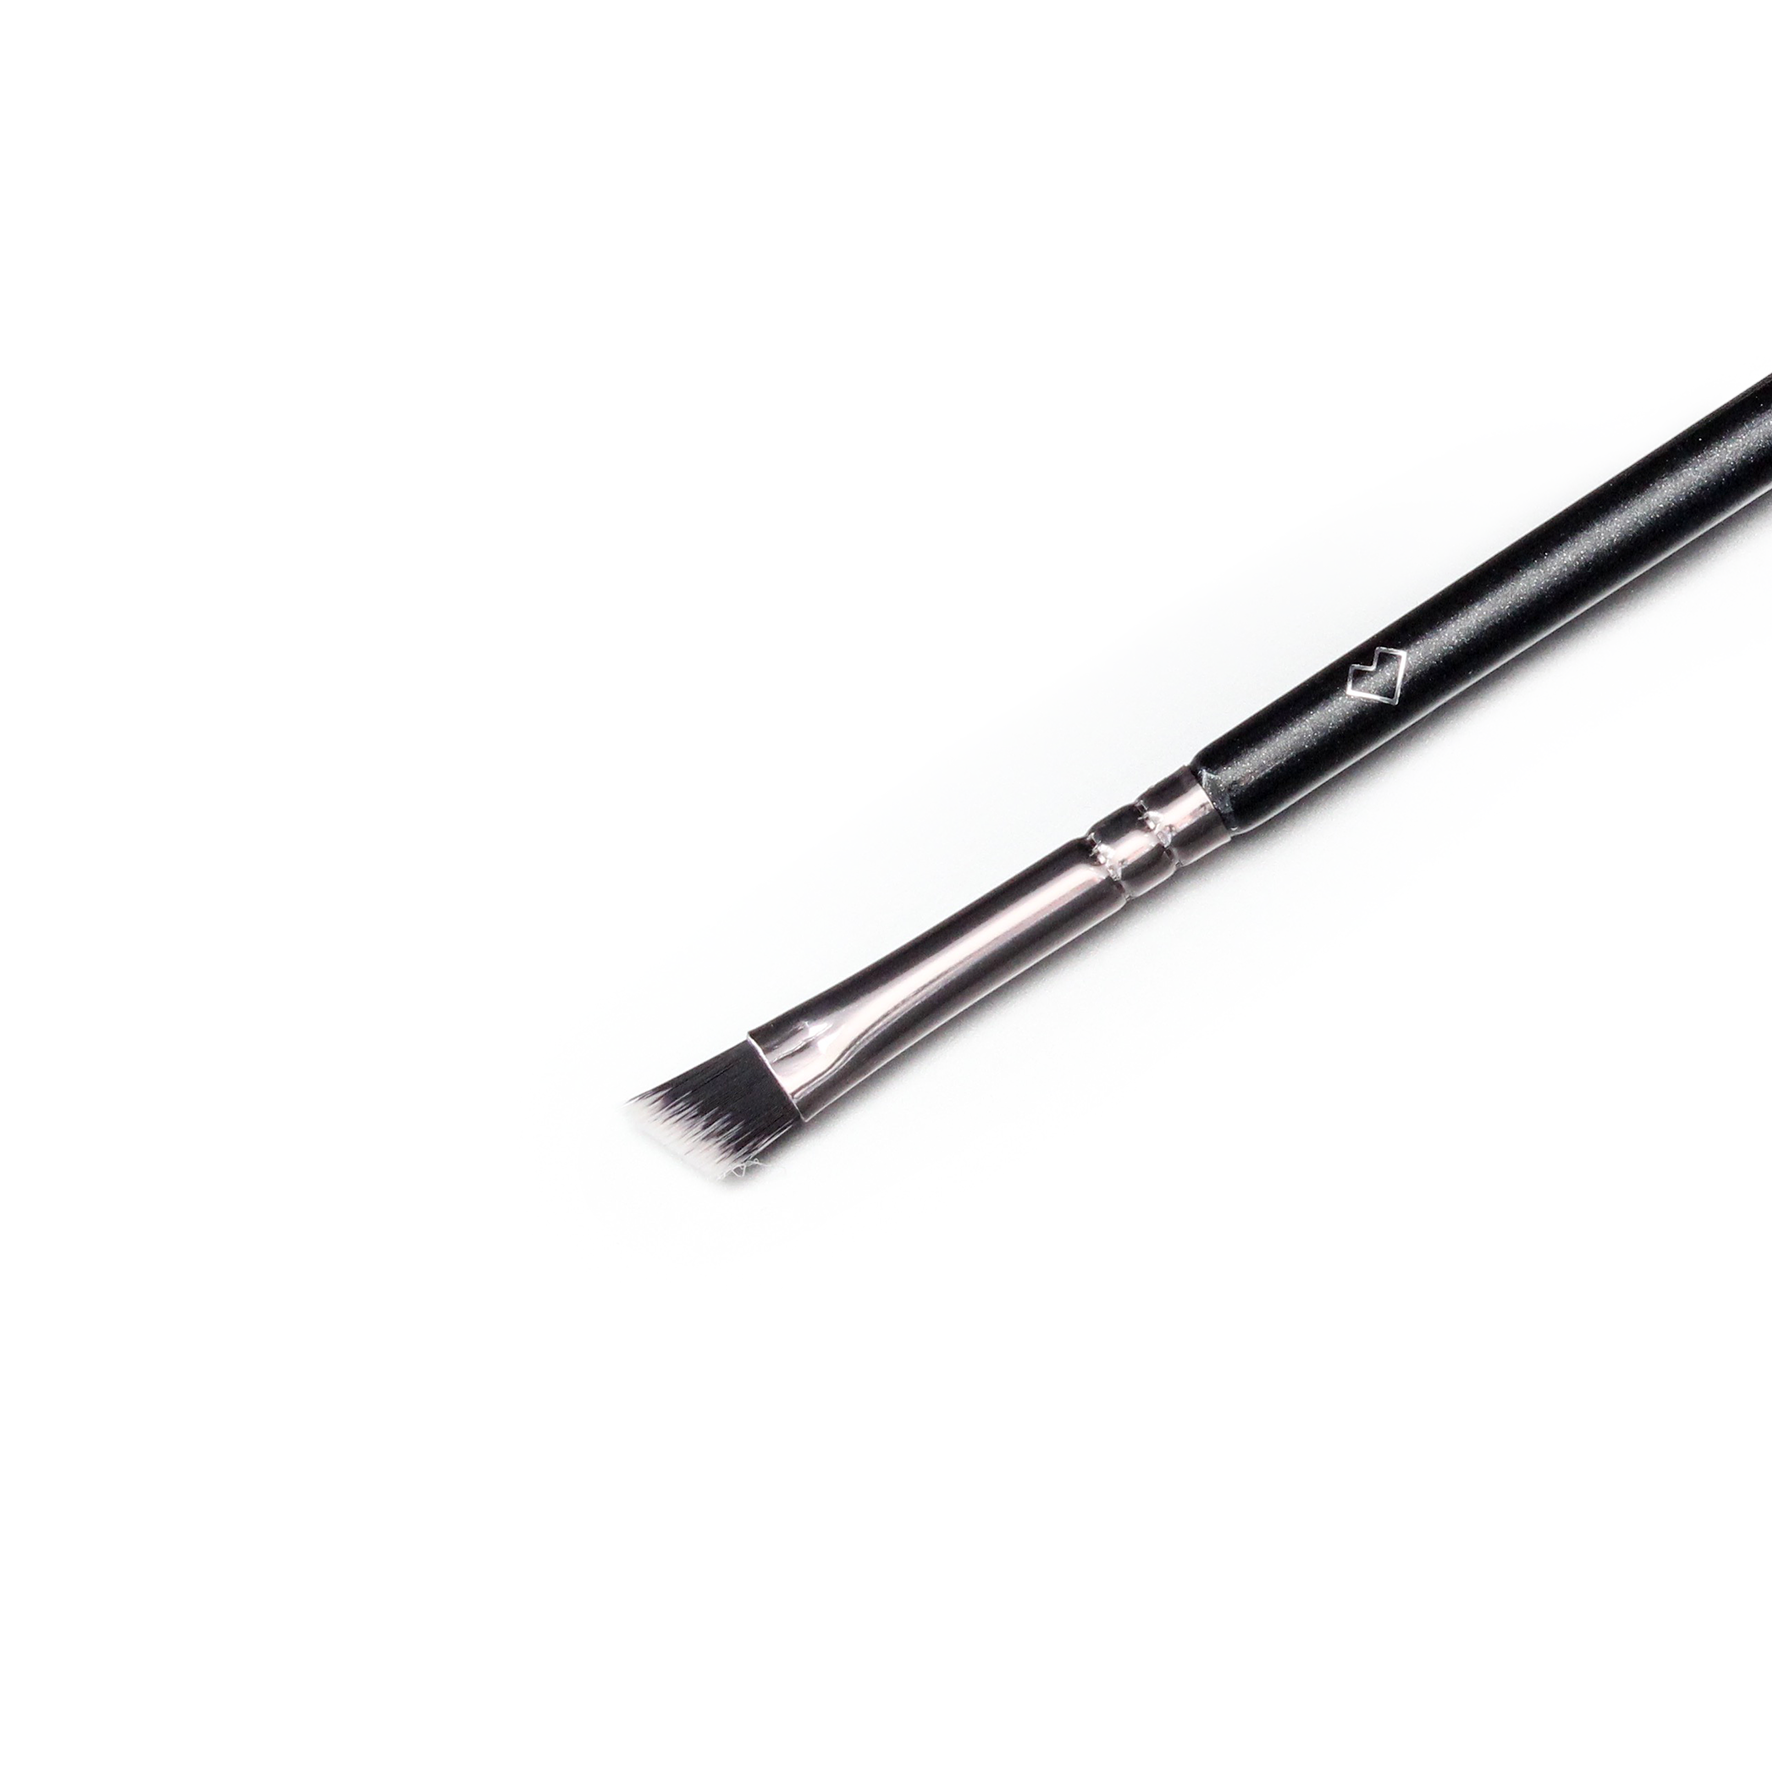 Our angled eyeliner brush has short hairs so a clean